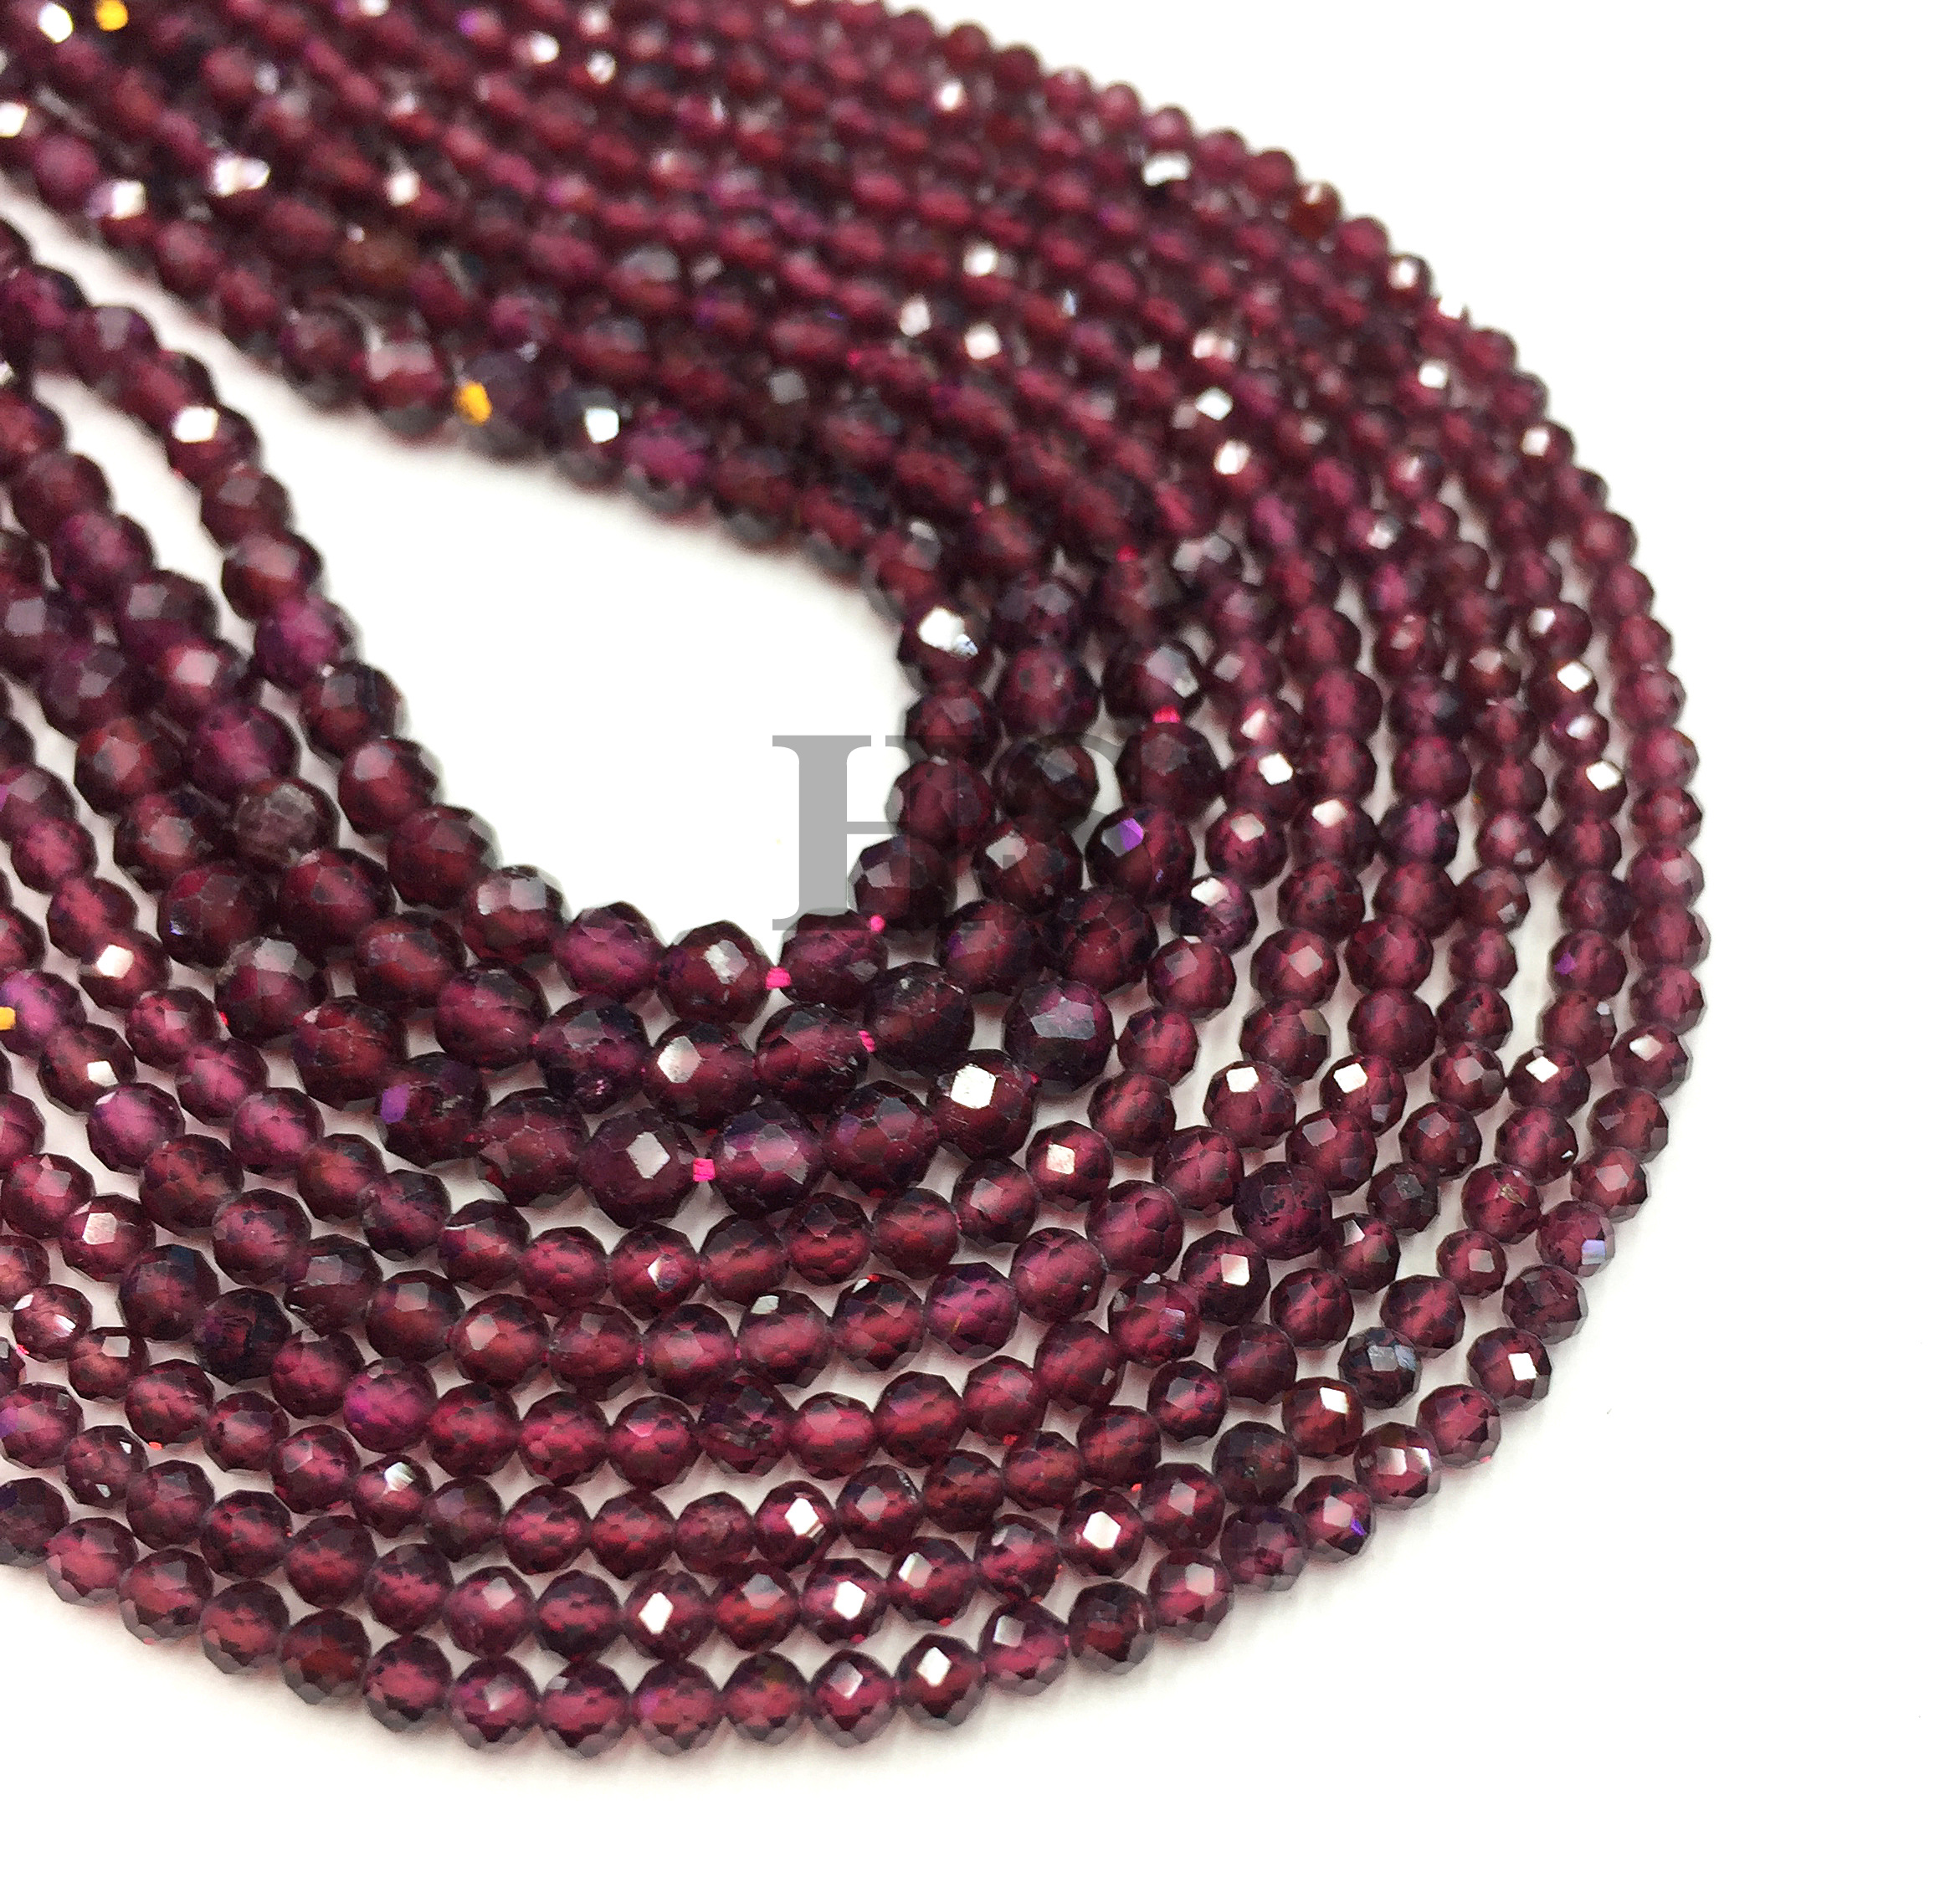 Natural Garnet Small Faceted Round Loose Bead Healing Energy Stone DIY Jewelry Making Bracelet Necklace Design 2mm 3mm 4mm